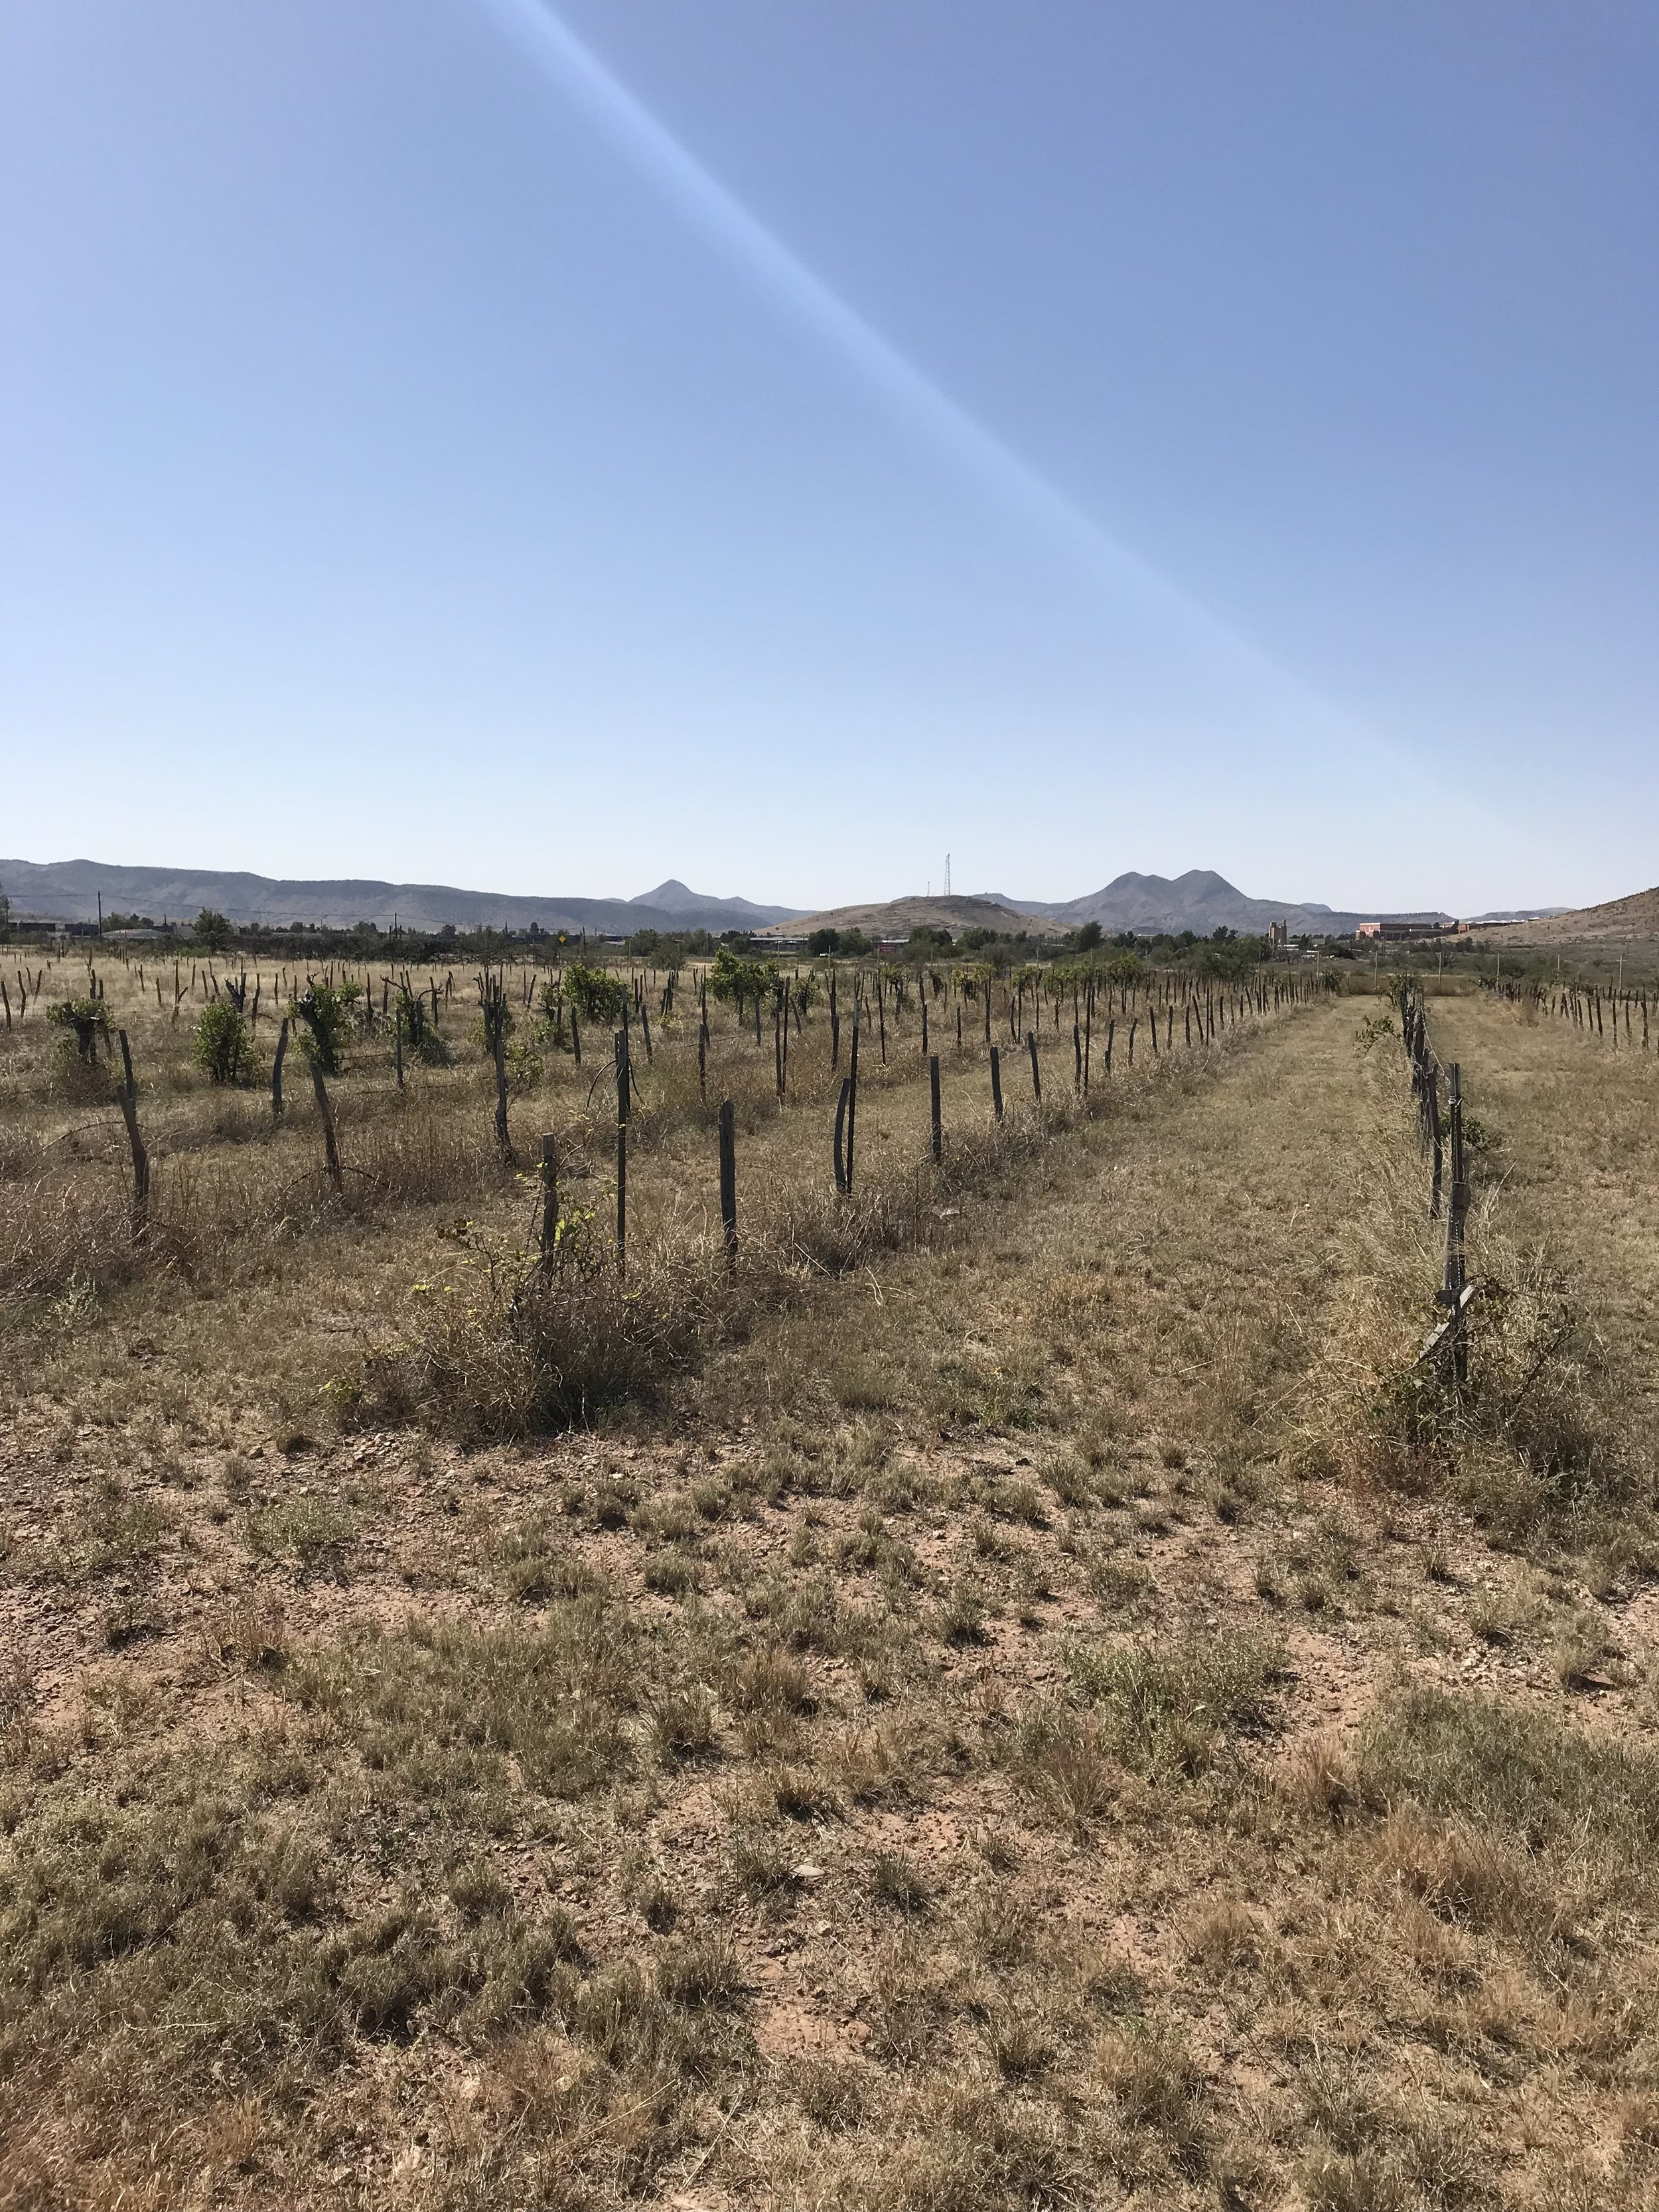 I'm fairly sure this was a research vineyard planted by Sul Ross State University in Alpine. It's just at the south end of town and seems almost all dead except for some of the root stocks.